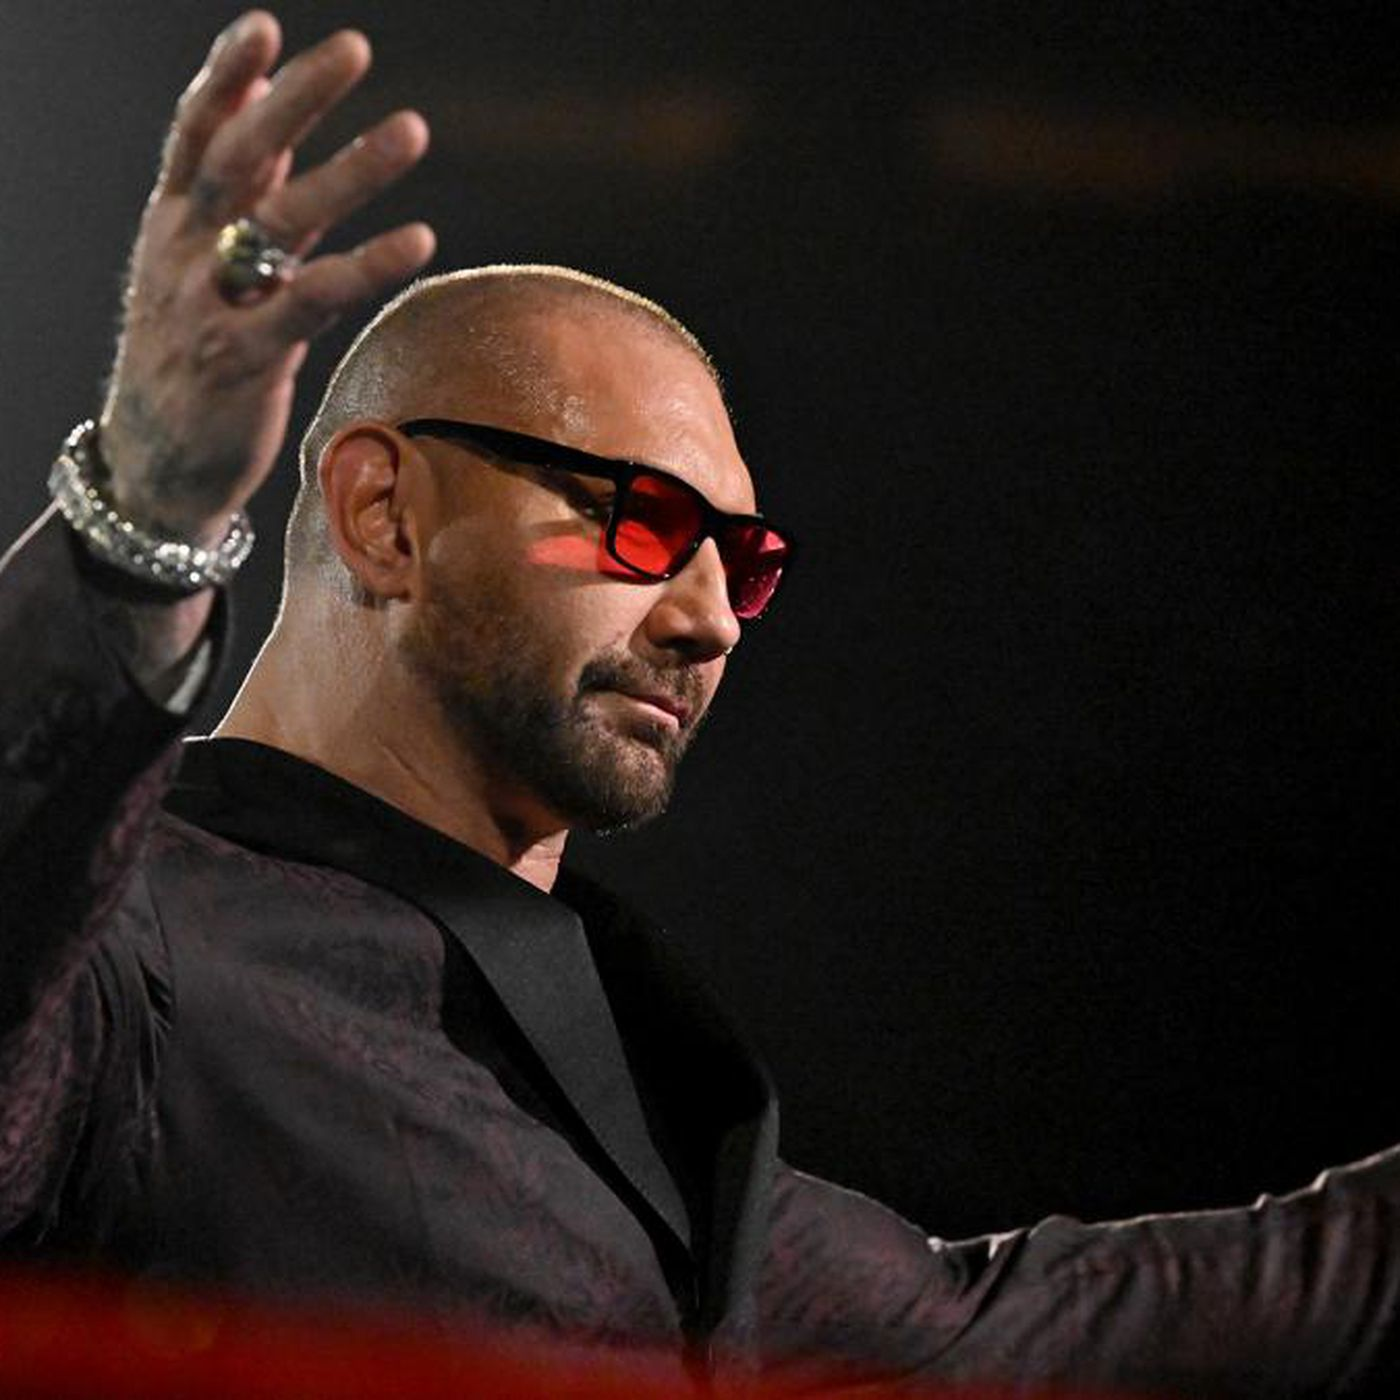 Wwe Hall Of Fame 2020 Full Show.Batista Joins Wwe Hall Of Fame 2020 Class Cageside Seats